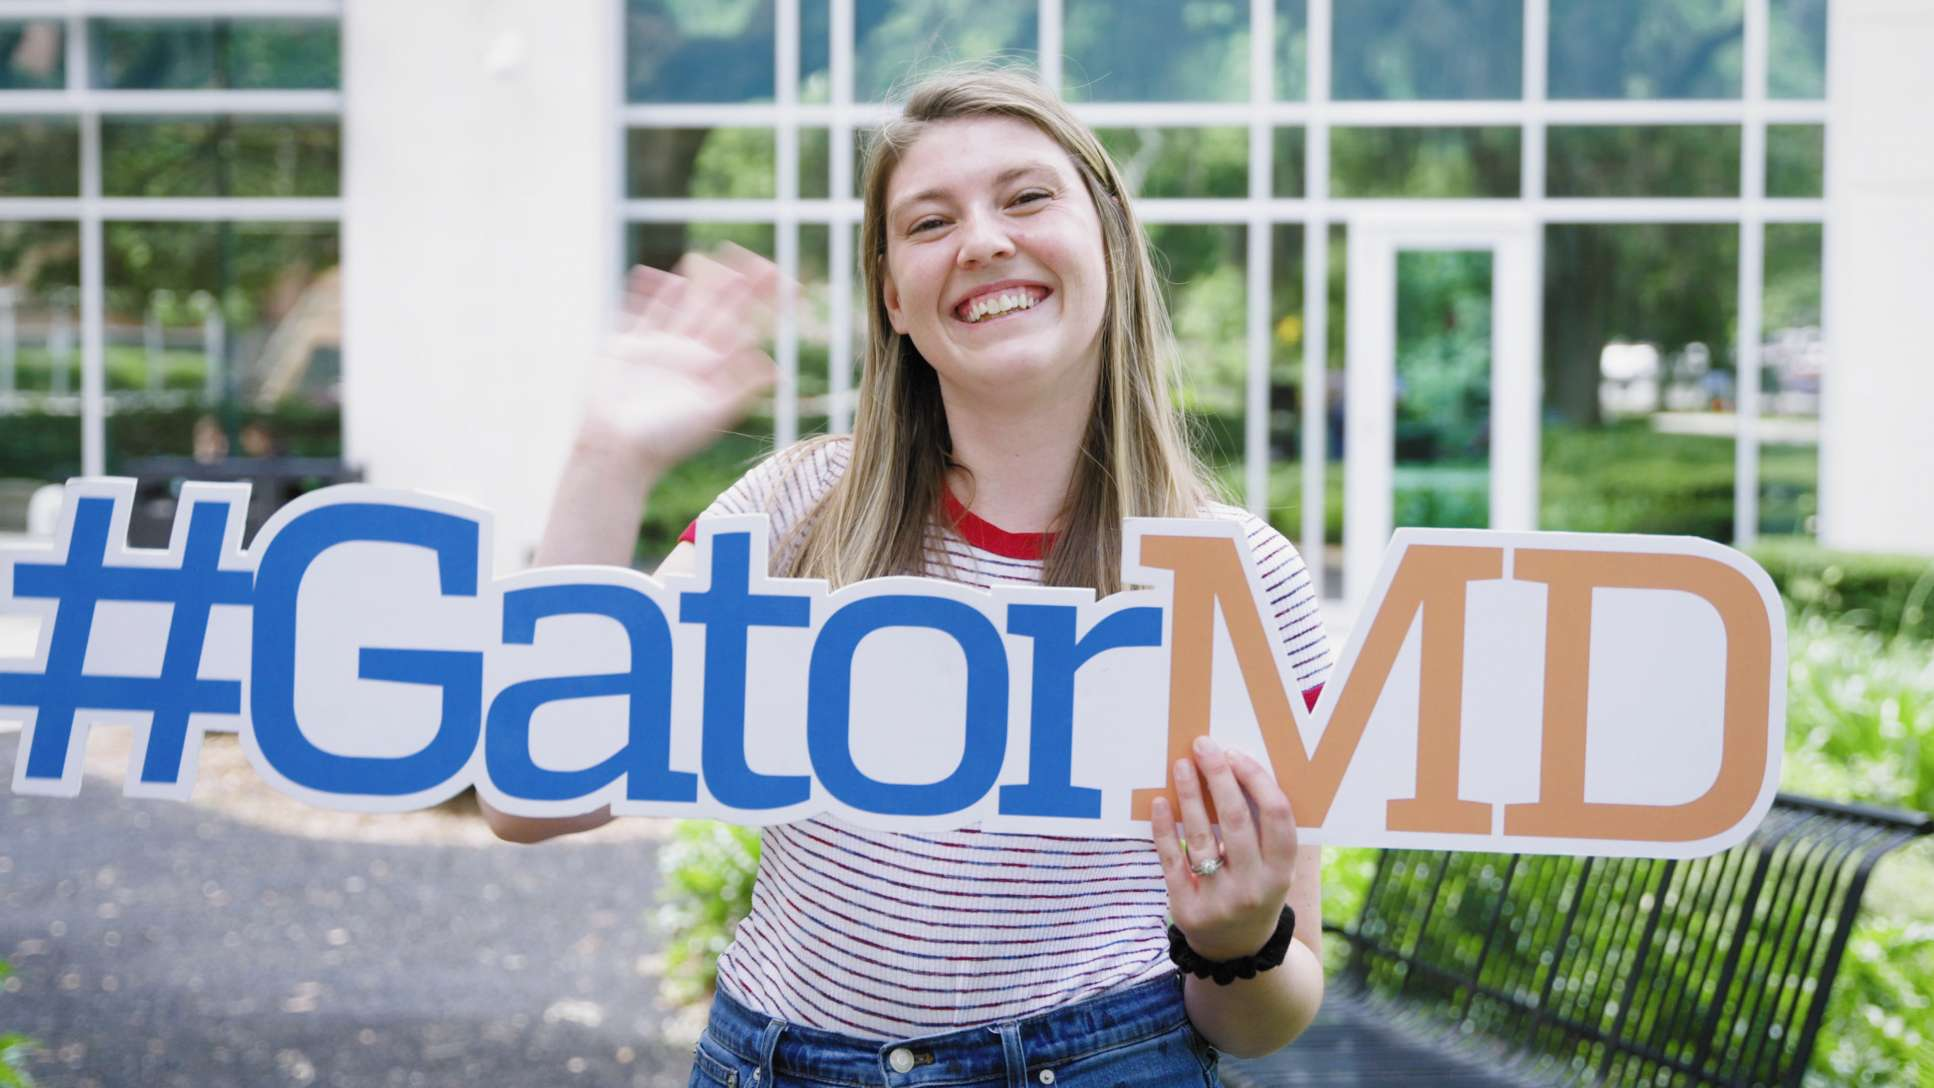 """A student waves while holding a sign that says """"Gator M-D."""""""